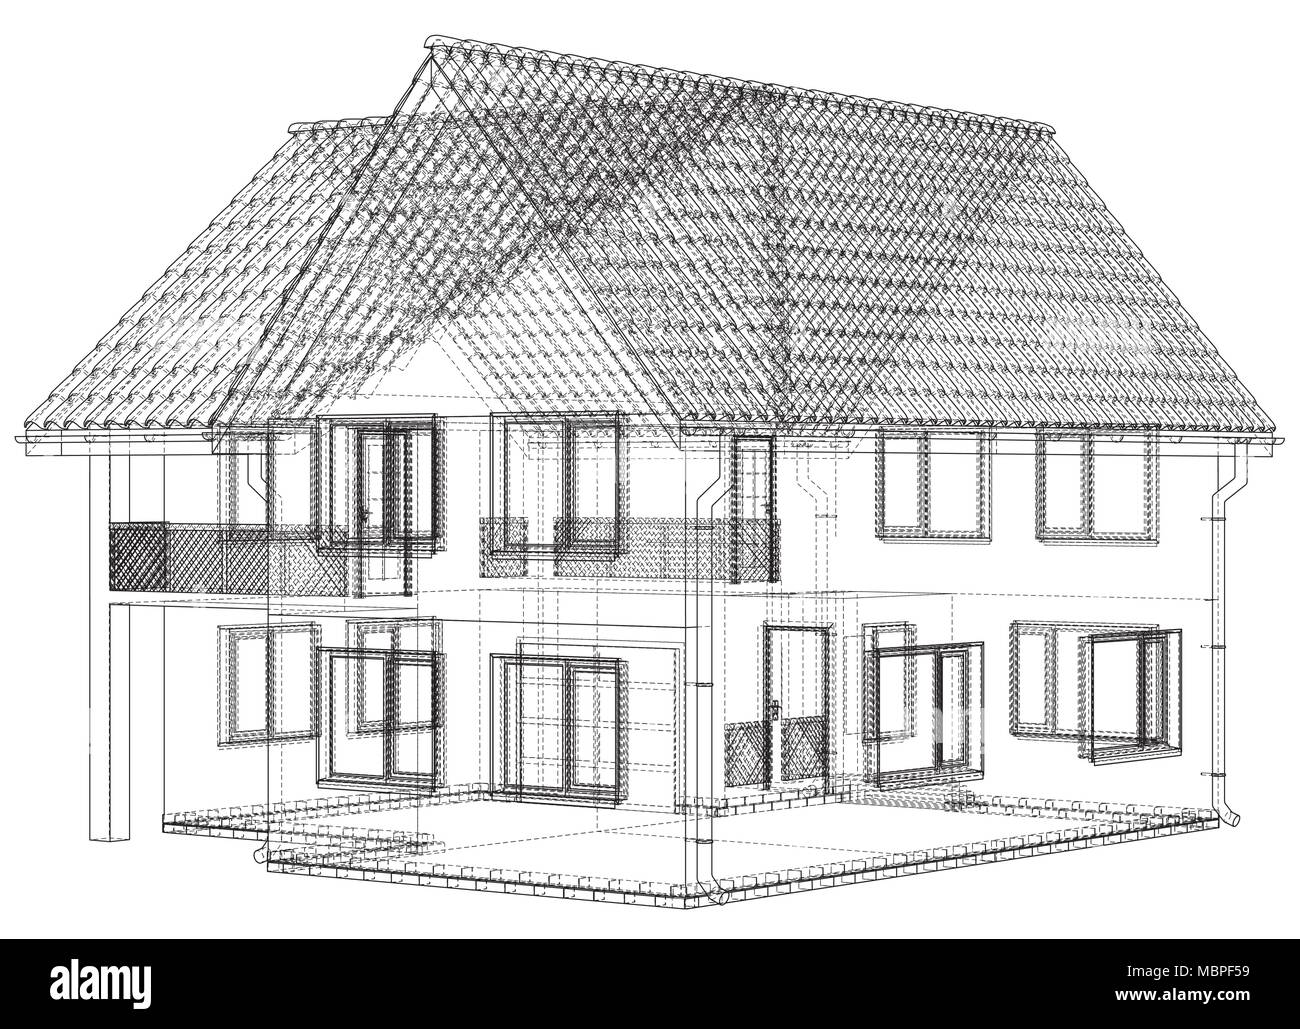 House wire blueprint - isolated over a white background Stock Vector ...